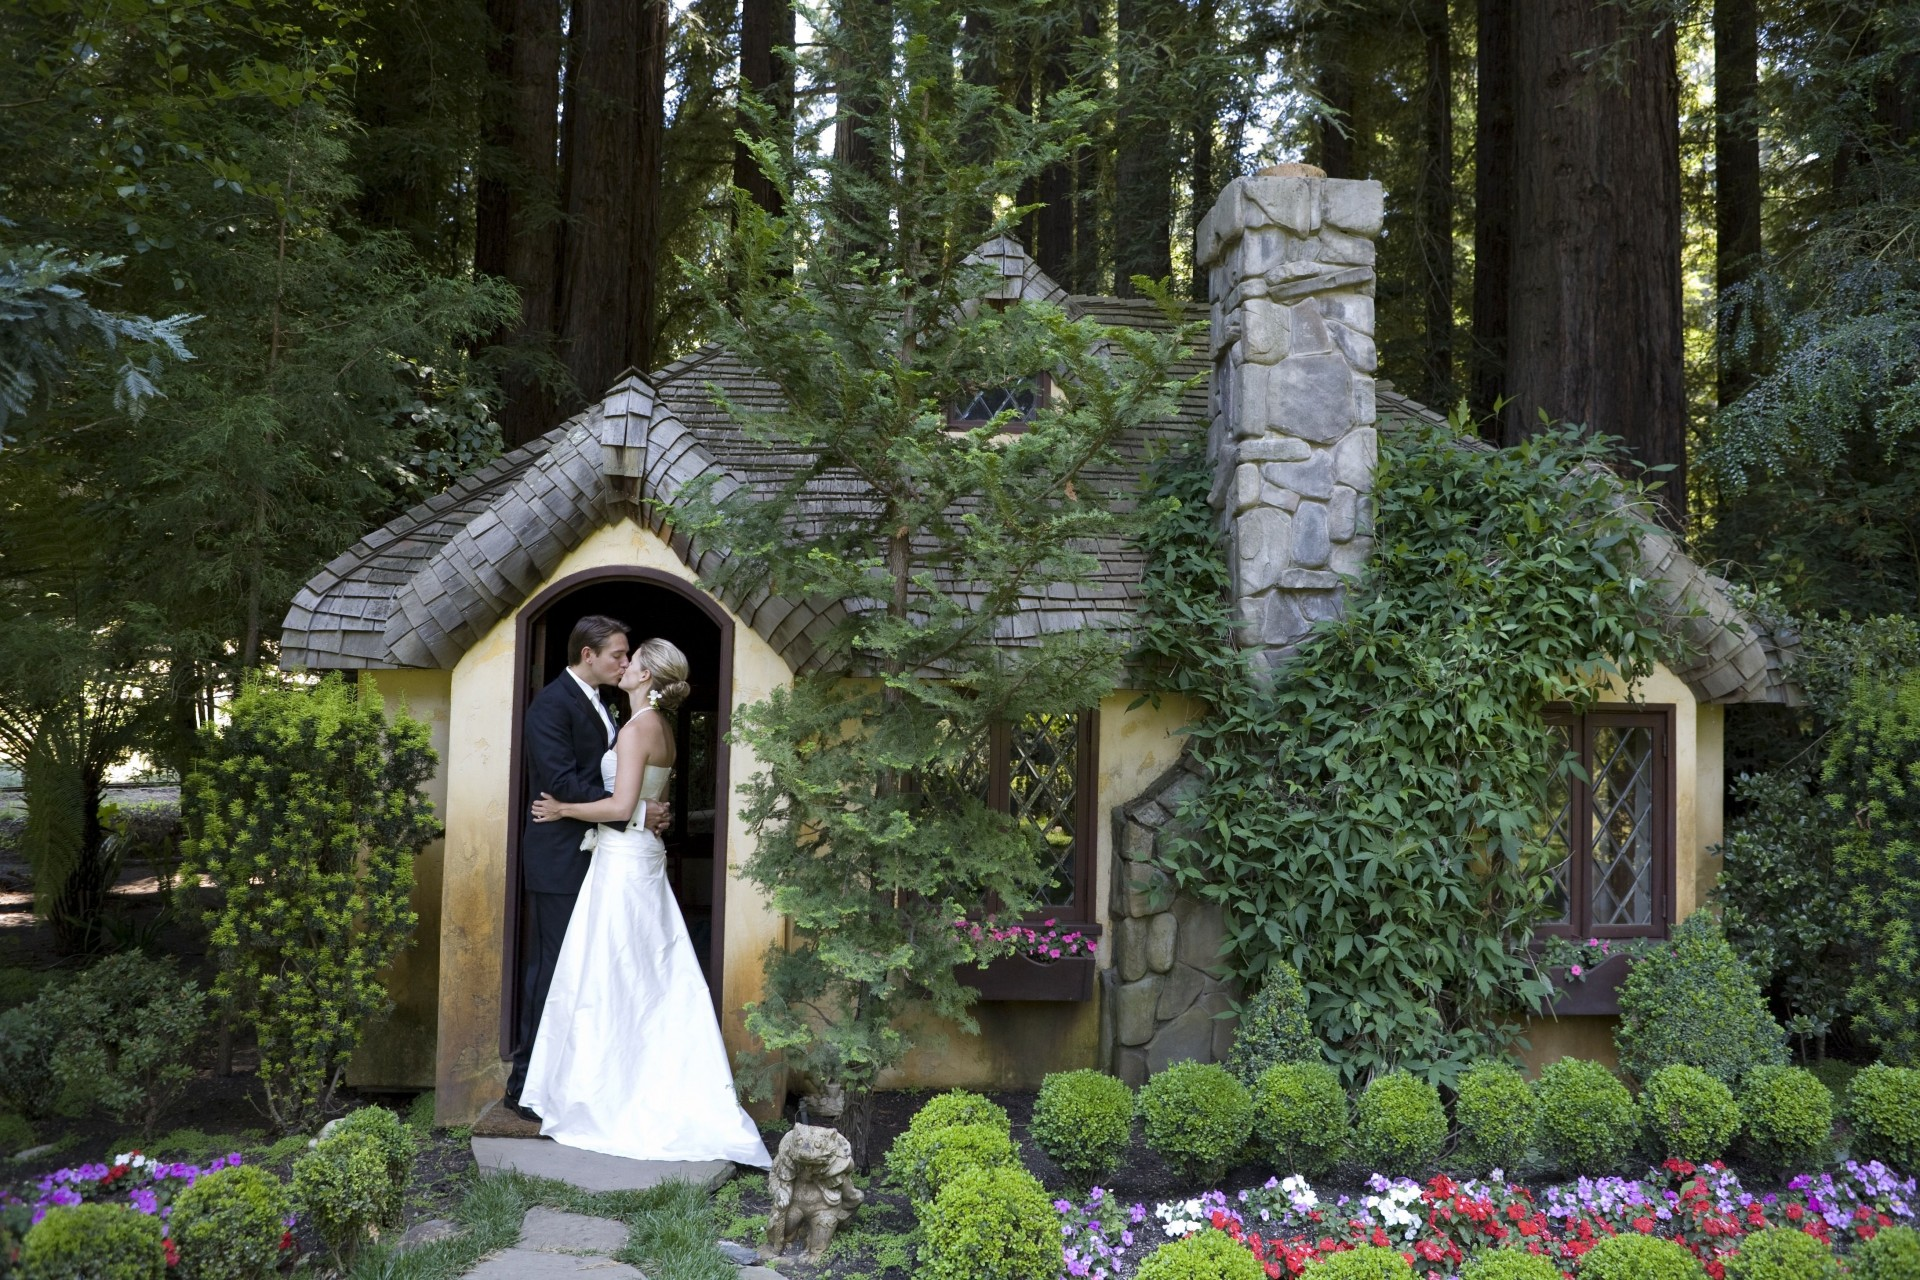 Best top luxury wedding destinations venues in california for Top wedding venues in the us